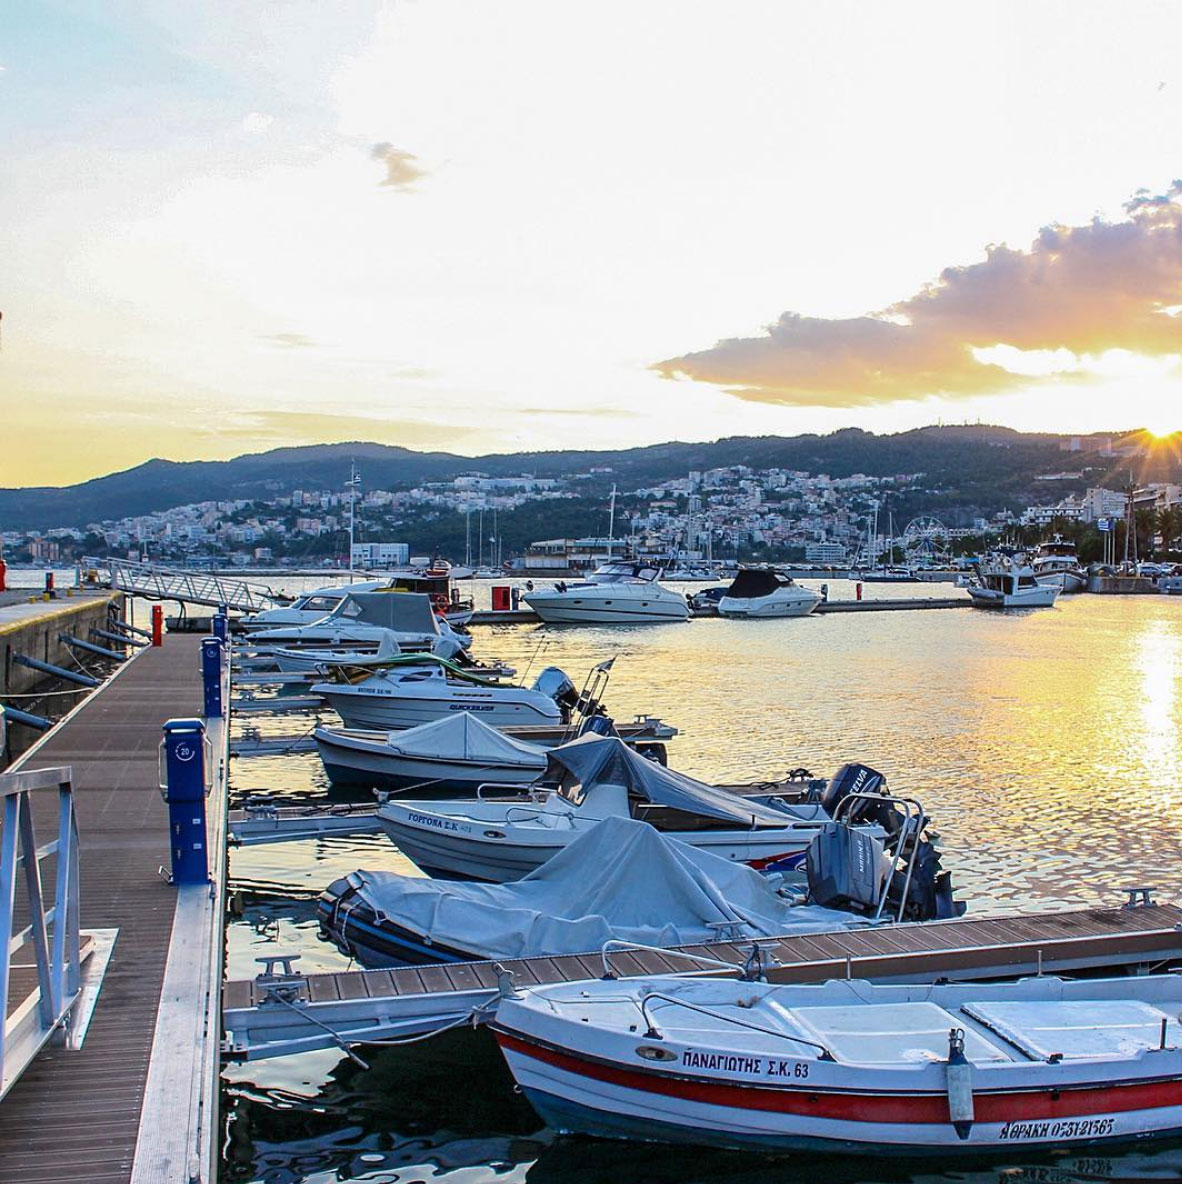 Sunset at the harbor in City of Drama, Greece